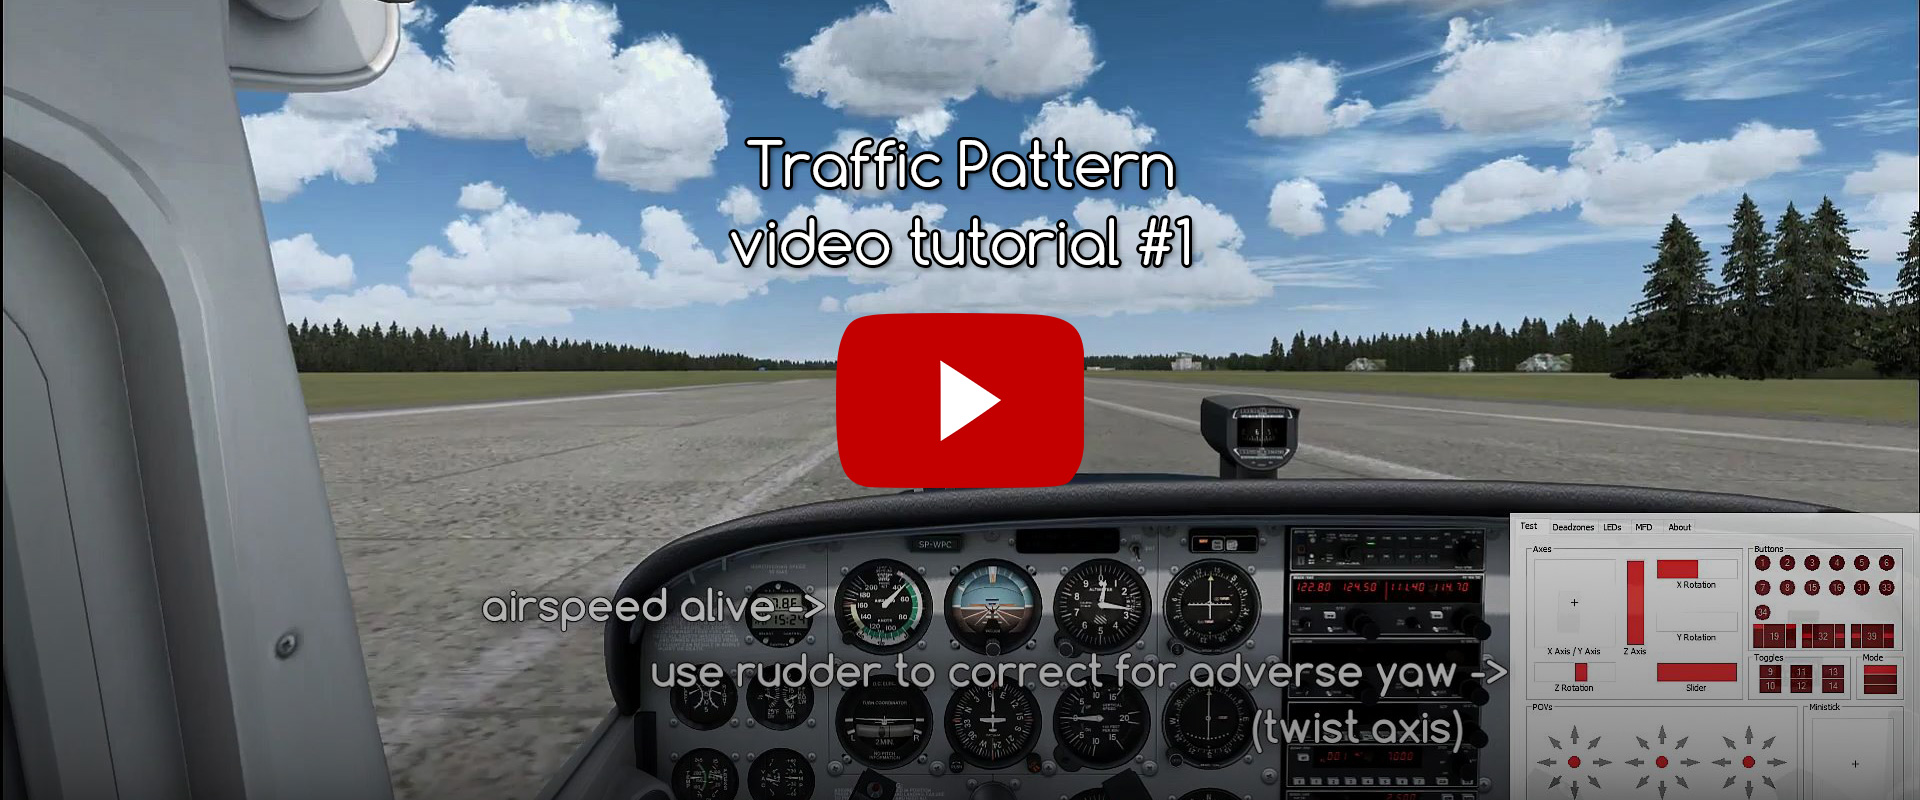 Traffic pattern - video tutorial - part #1